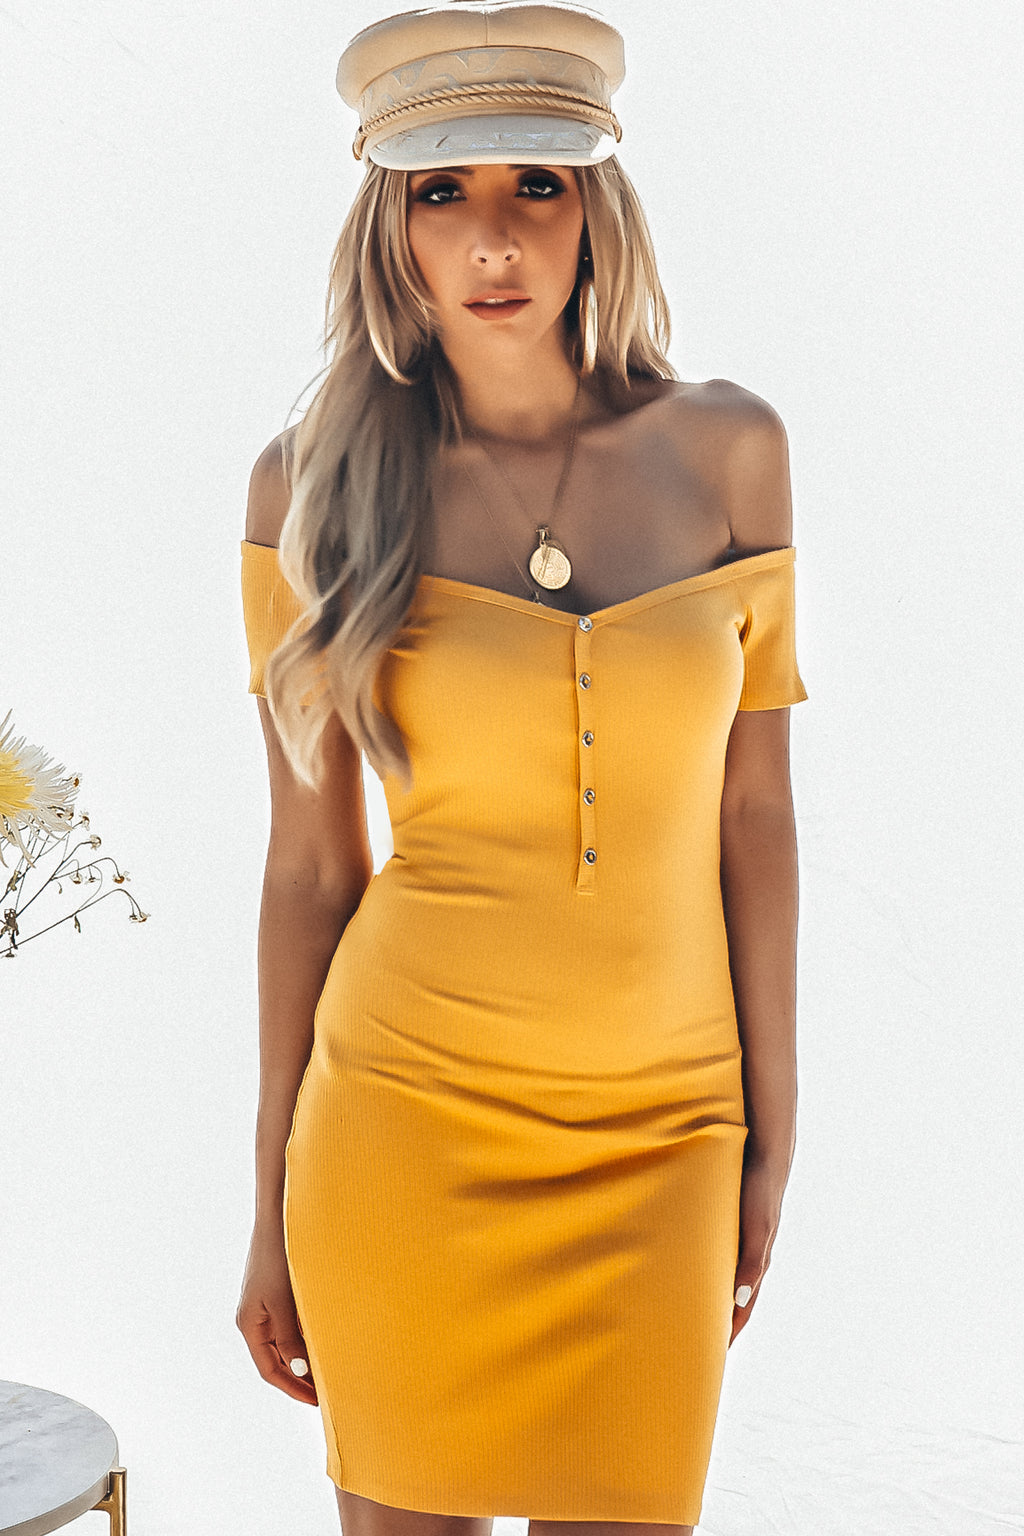 Off-Shoulder Ribbed Mini Dress with Buttons - Mustard